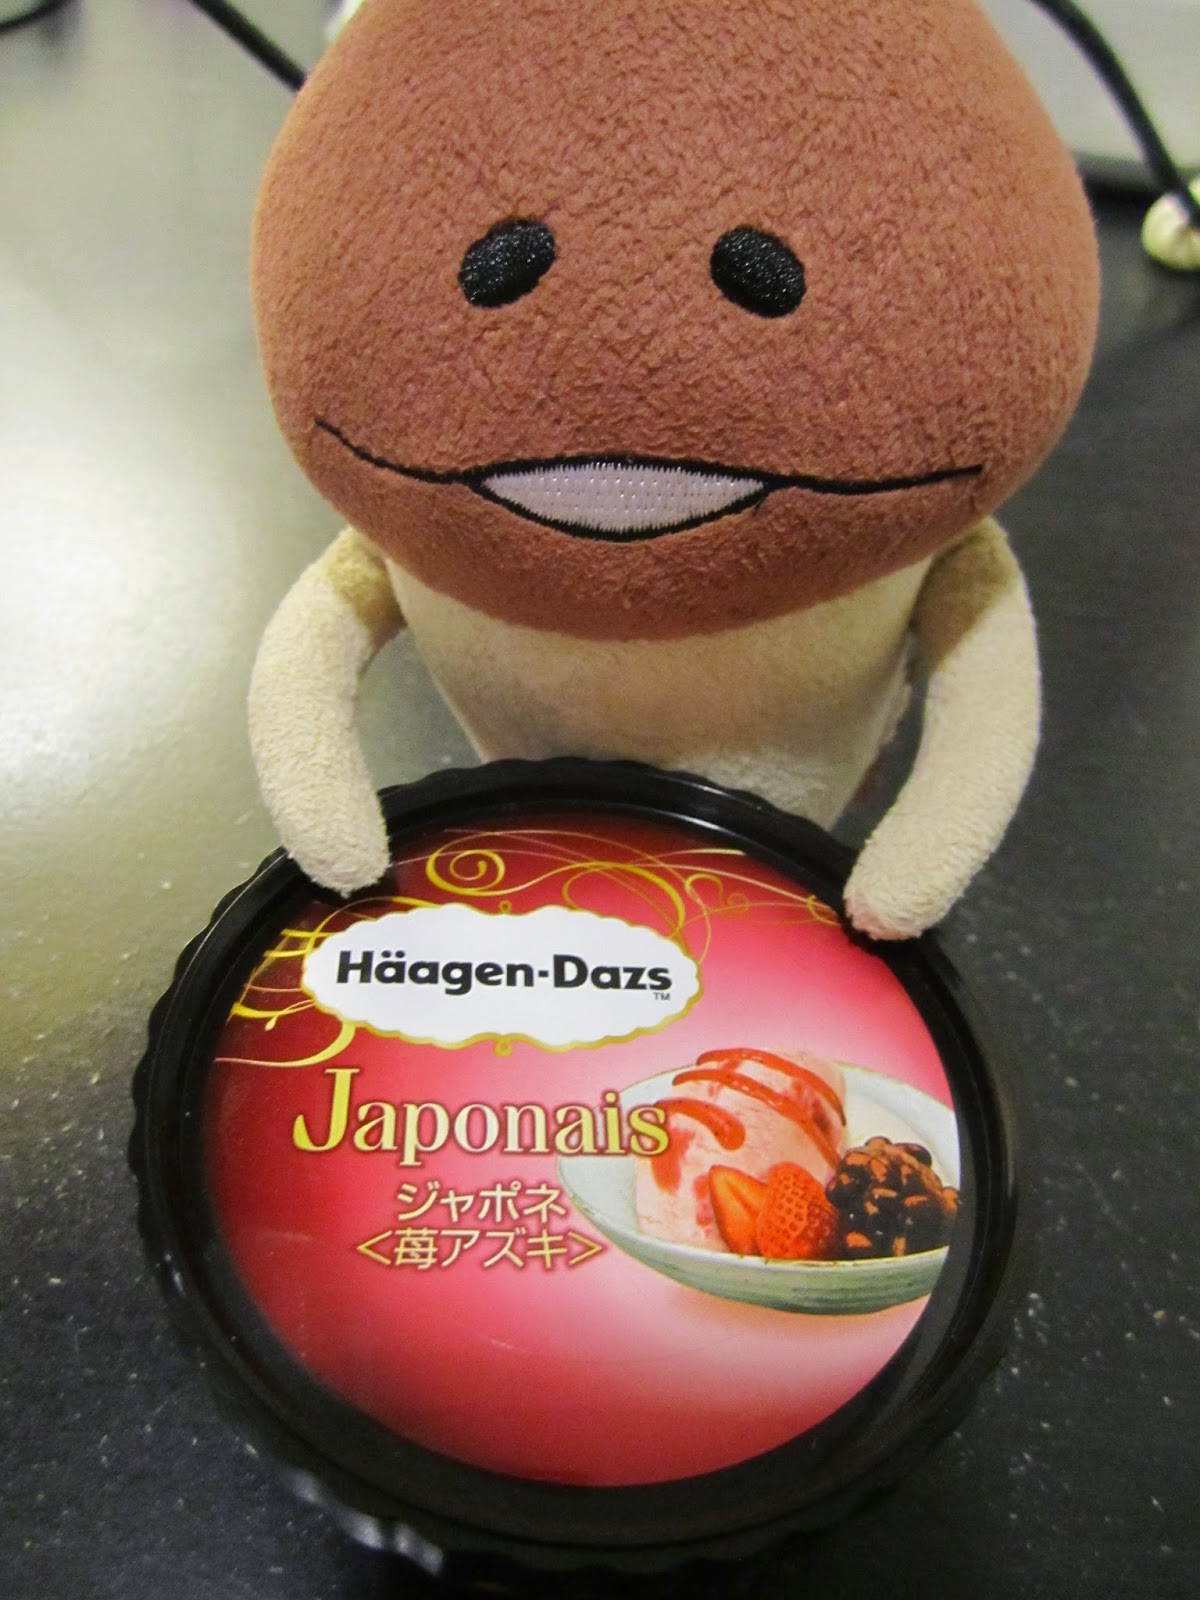 Haagen Dazs Japonais Ichigo Azuki strawberry red bean 7-Eleven limited